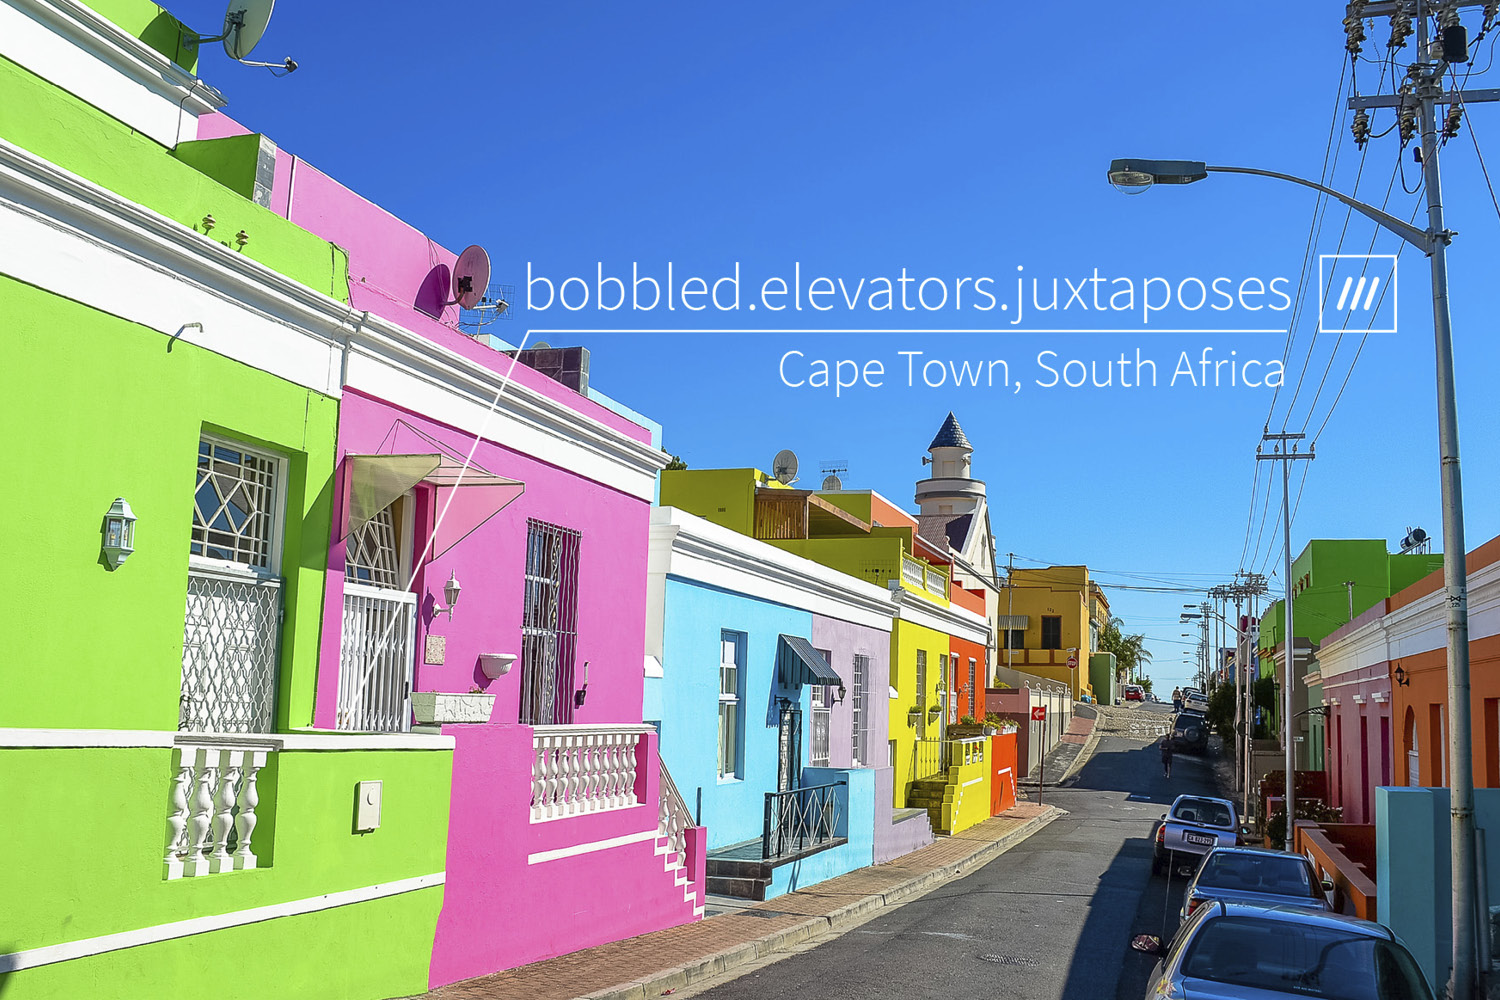 bright and colour houses on sunny day at 3 words address bobble.elevators.juxtaposes